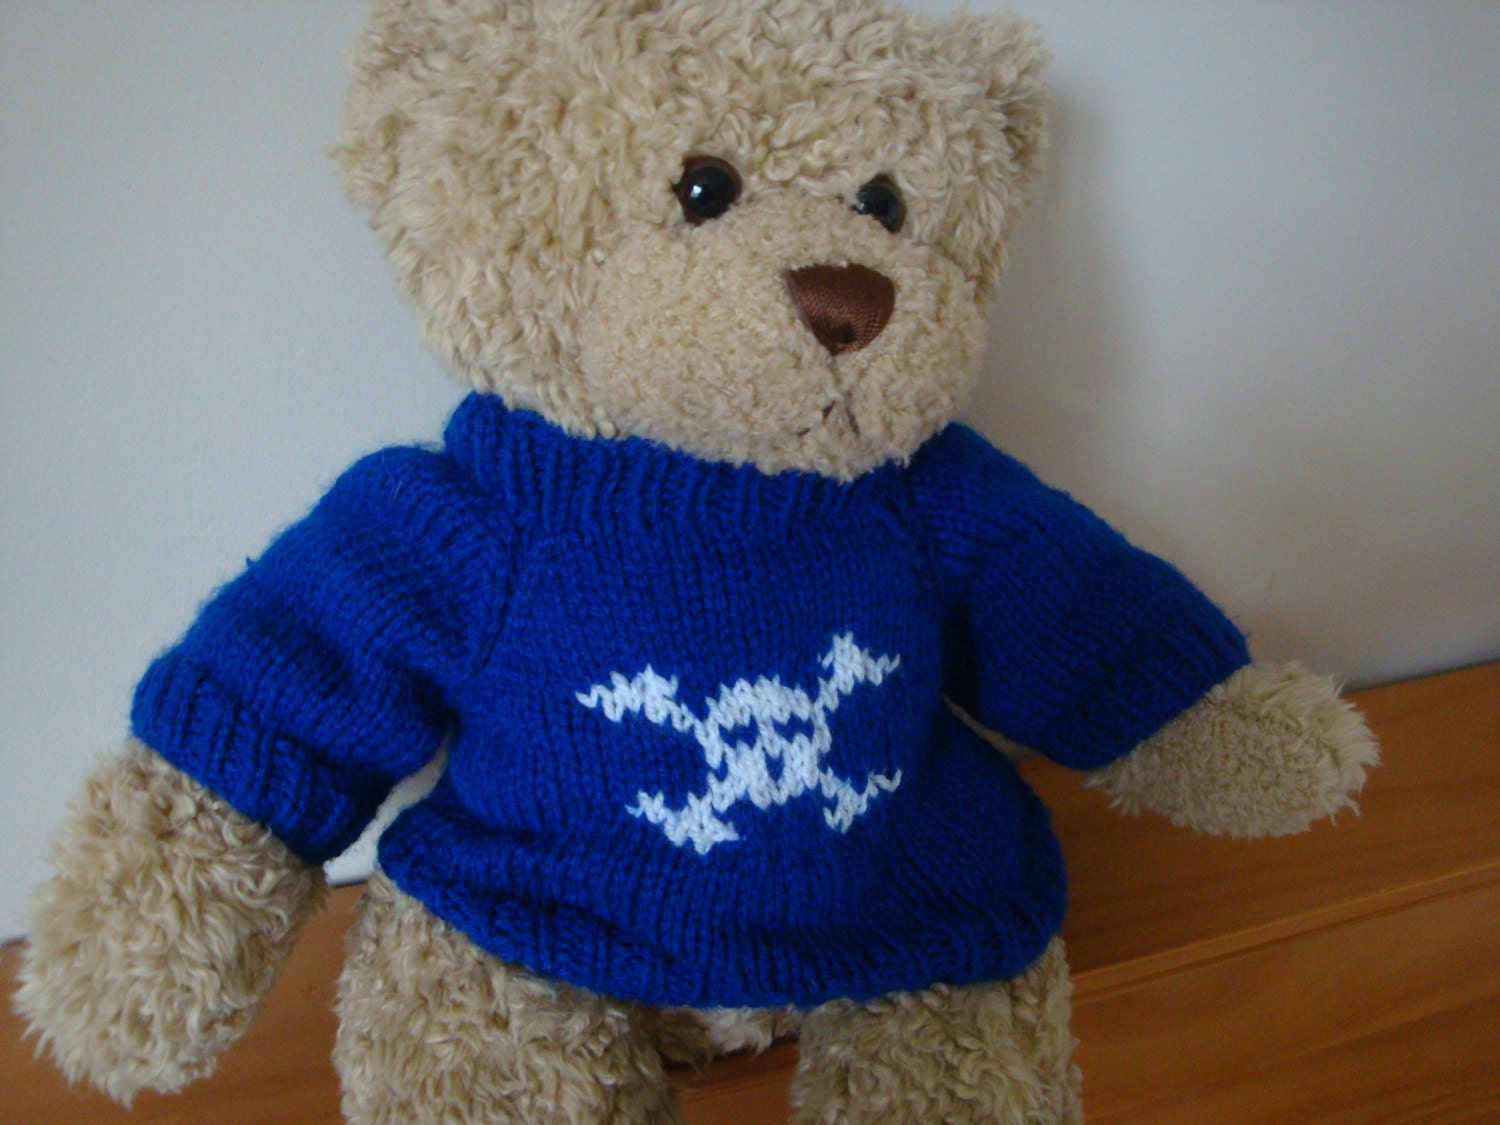 Teddy Bear Sweater  Hand knitted  Royal Blue with Skull and Crossbones